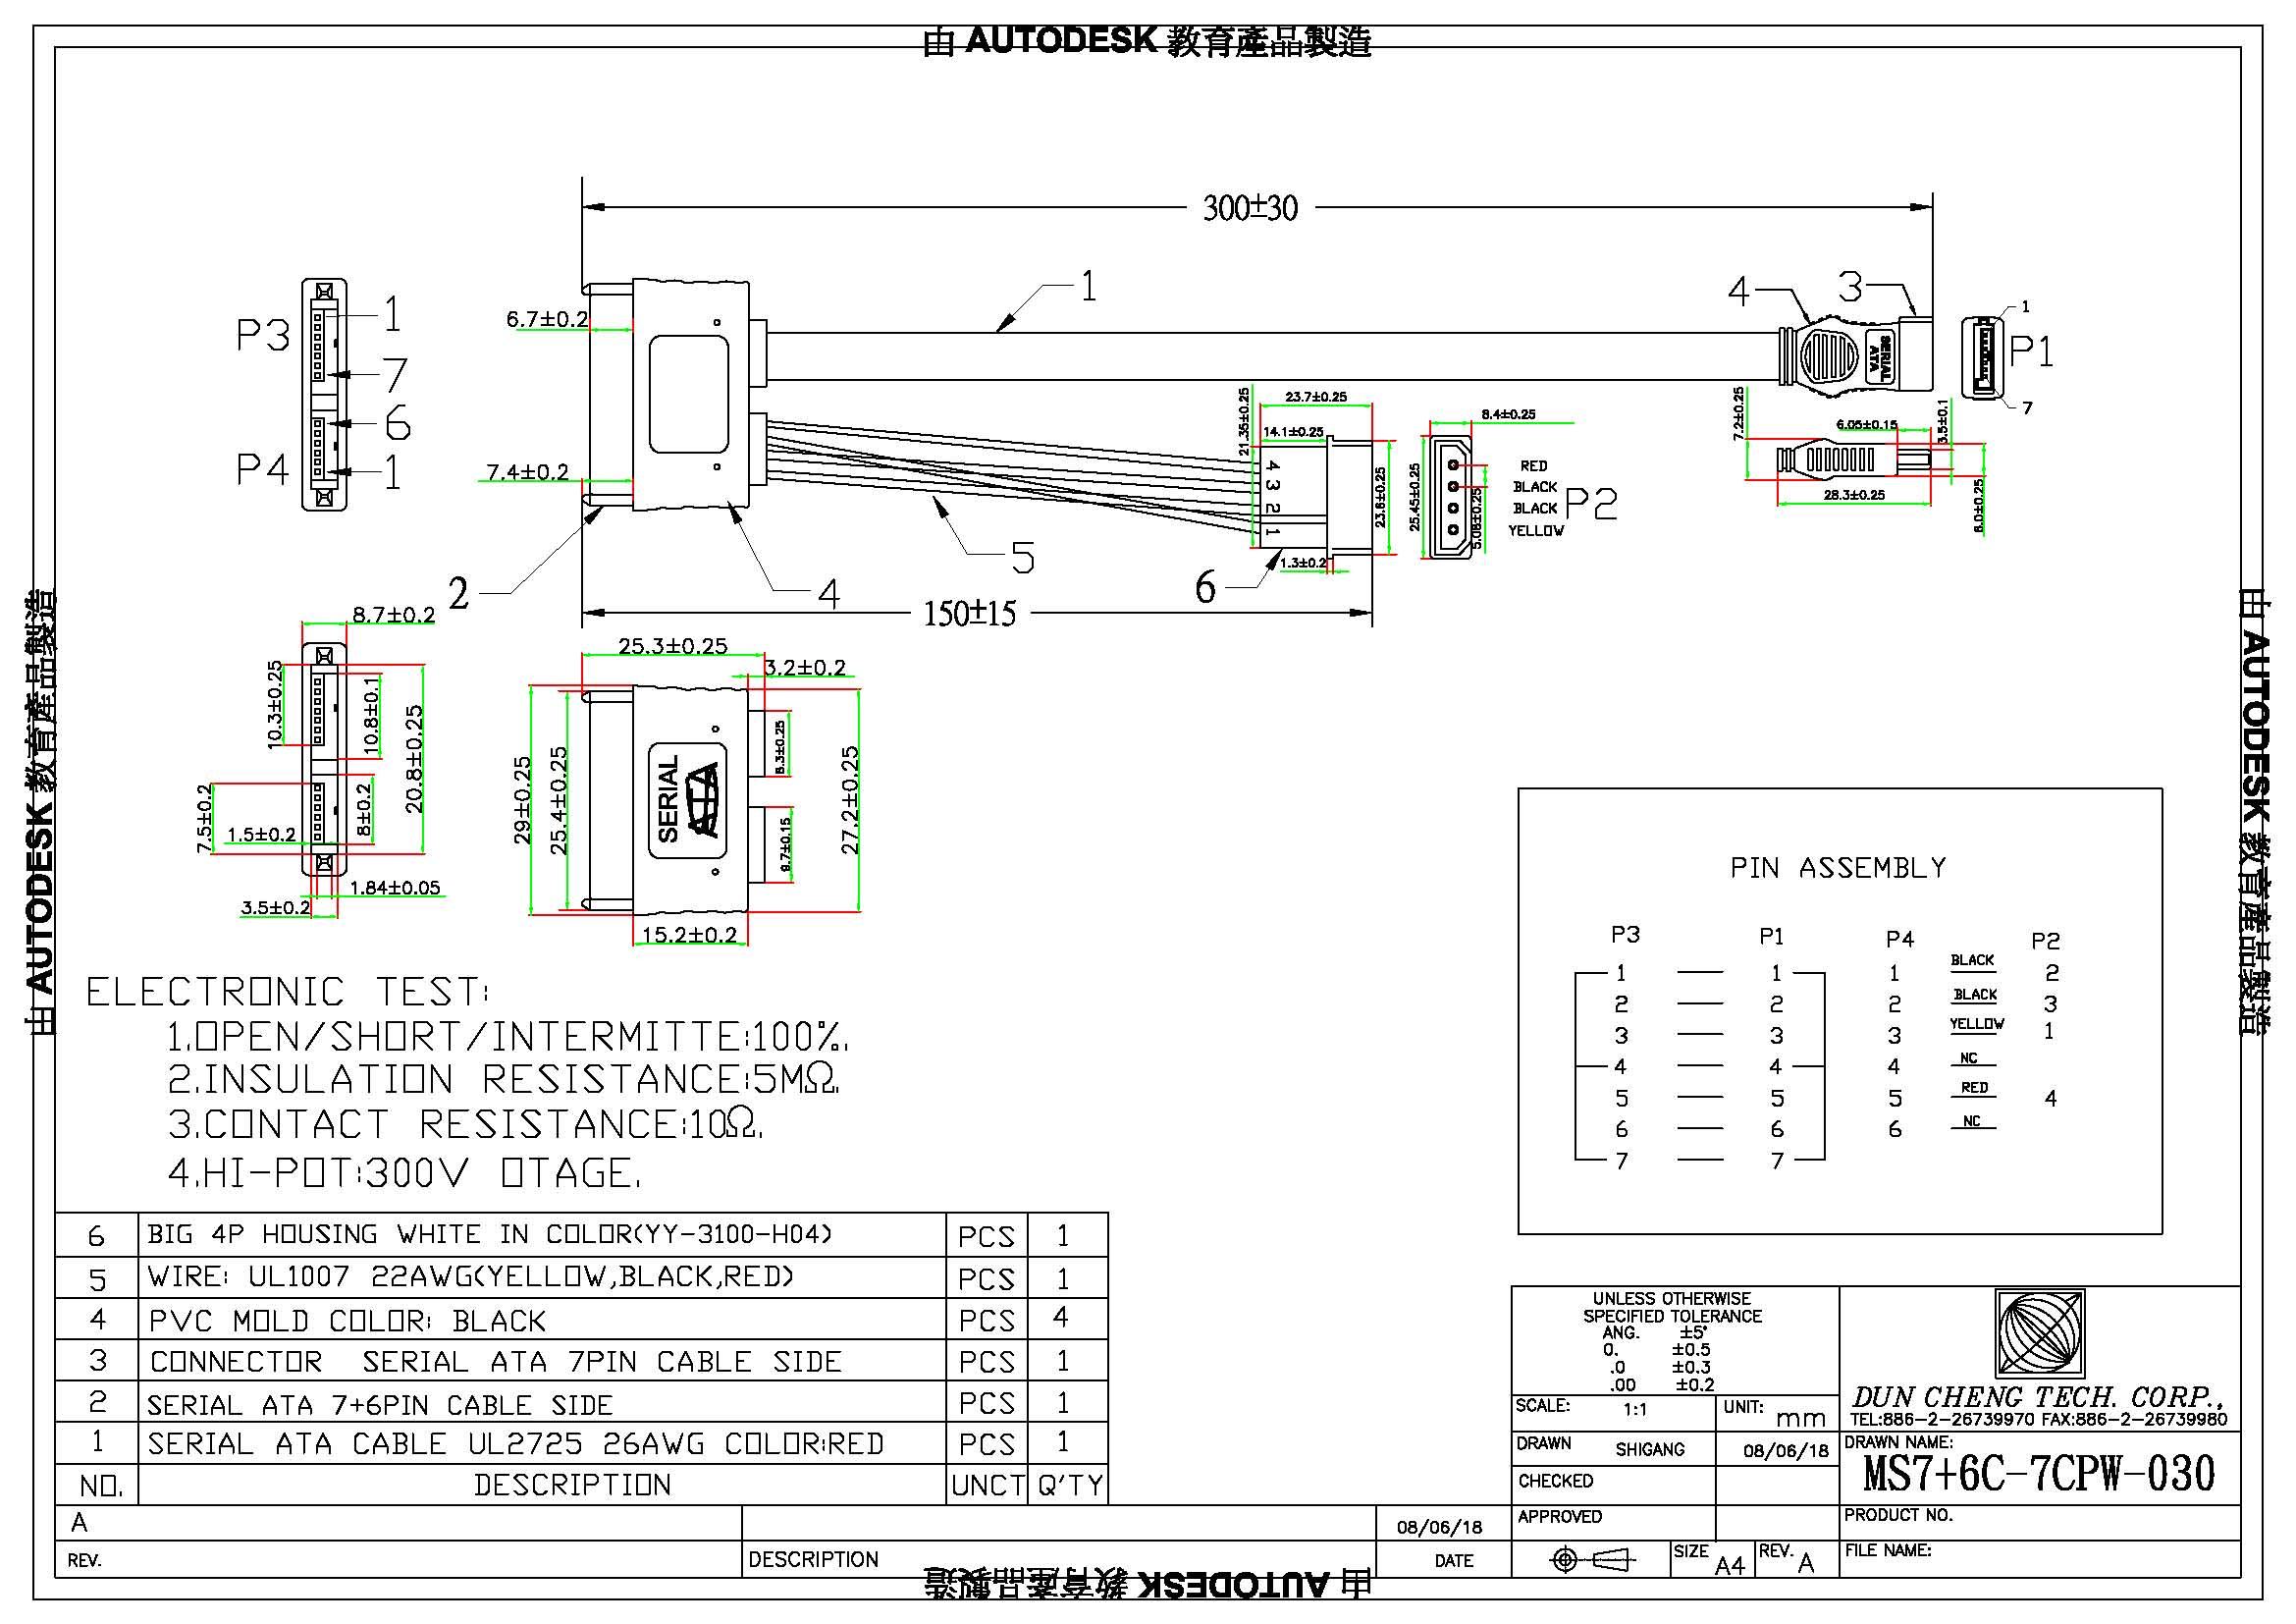 Wiring Diagram Sata | Manual E-Books - Usb 2.0 To Sata Adaptor Cable Wiring Diagram